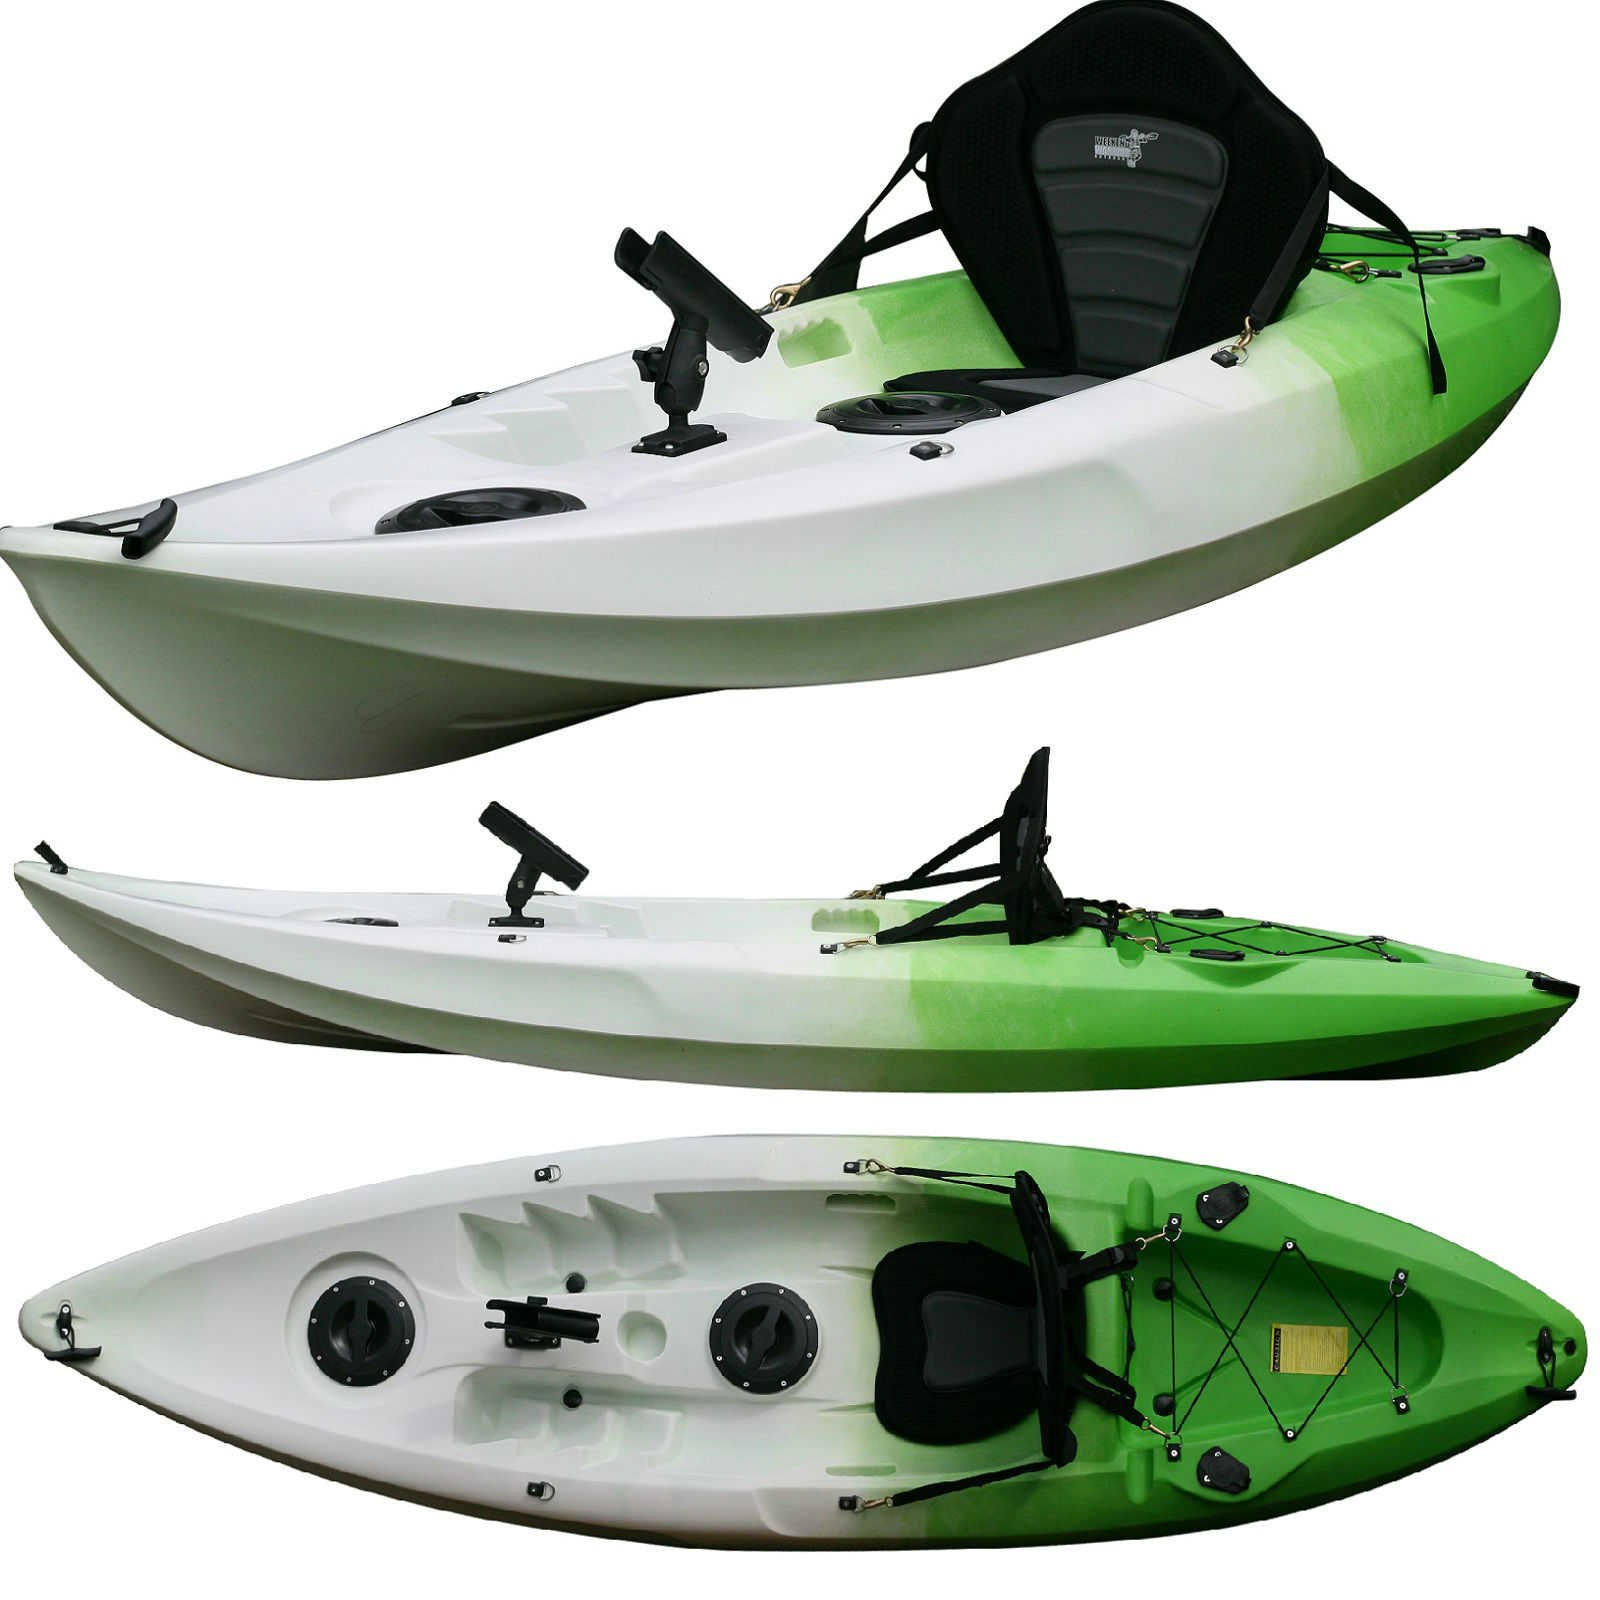 Single fishing kayak snapper green weekend warrior for Sit on vs sit in kayak for fishing